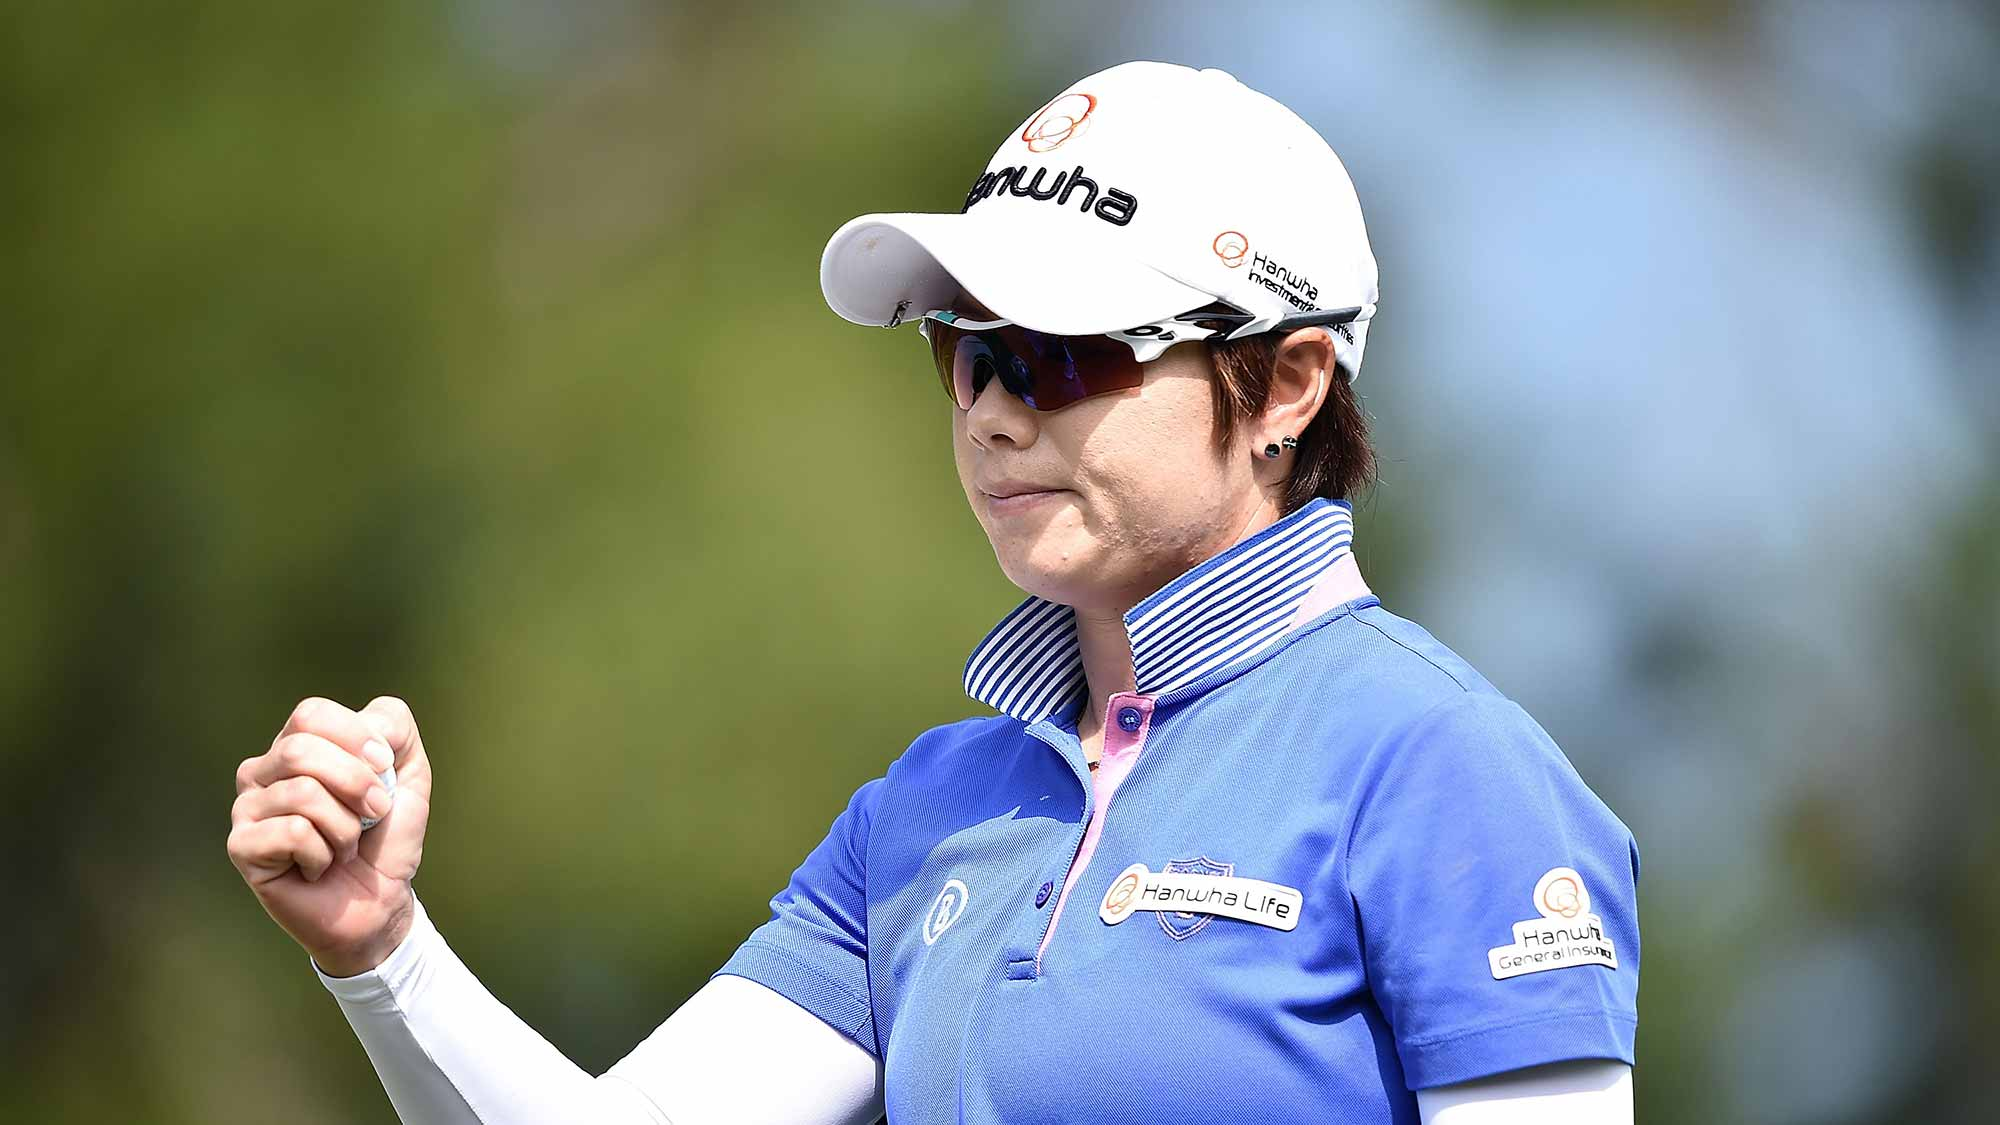 Eun-Hee Ji of South Korea poses during the final round of 2015 Fubon LPGA Taiwan Championship on October 25, 2015 in Miramar Resort & Country Club